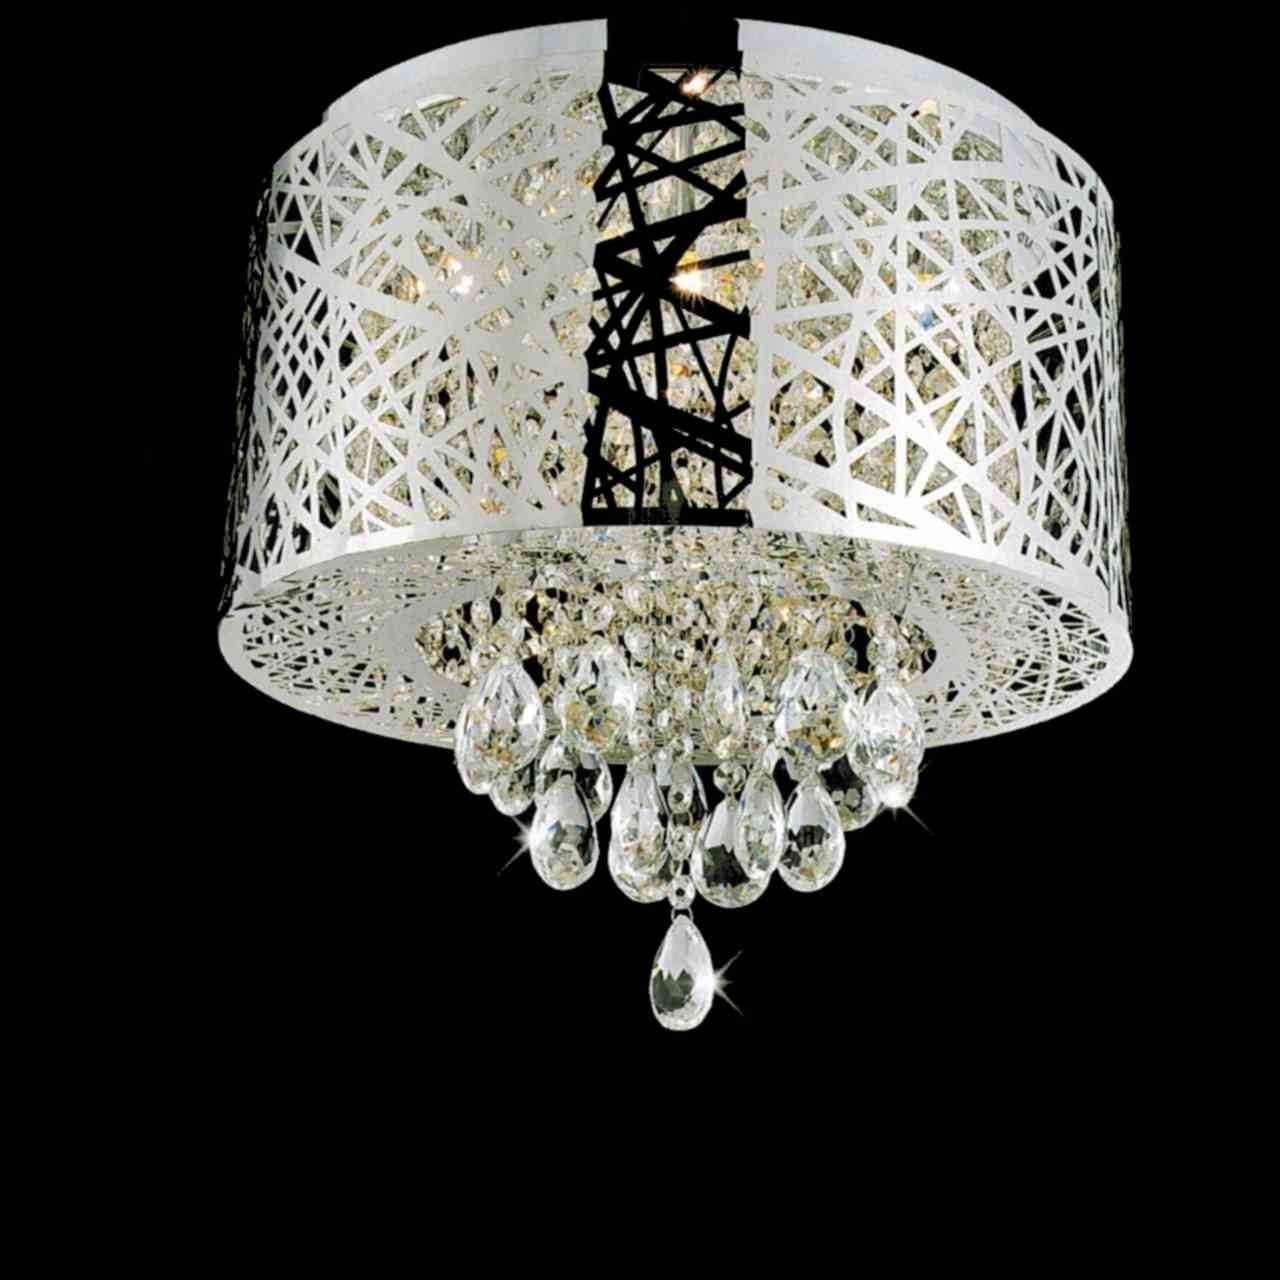 Best And Newest Wall Mount Crystal Chandeliers Inside Brizzo Lighting Stores (View 12 of 20)